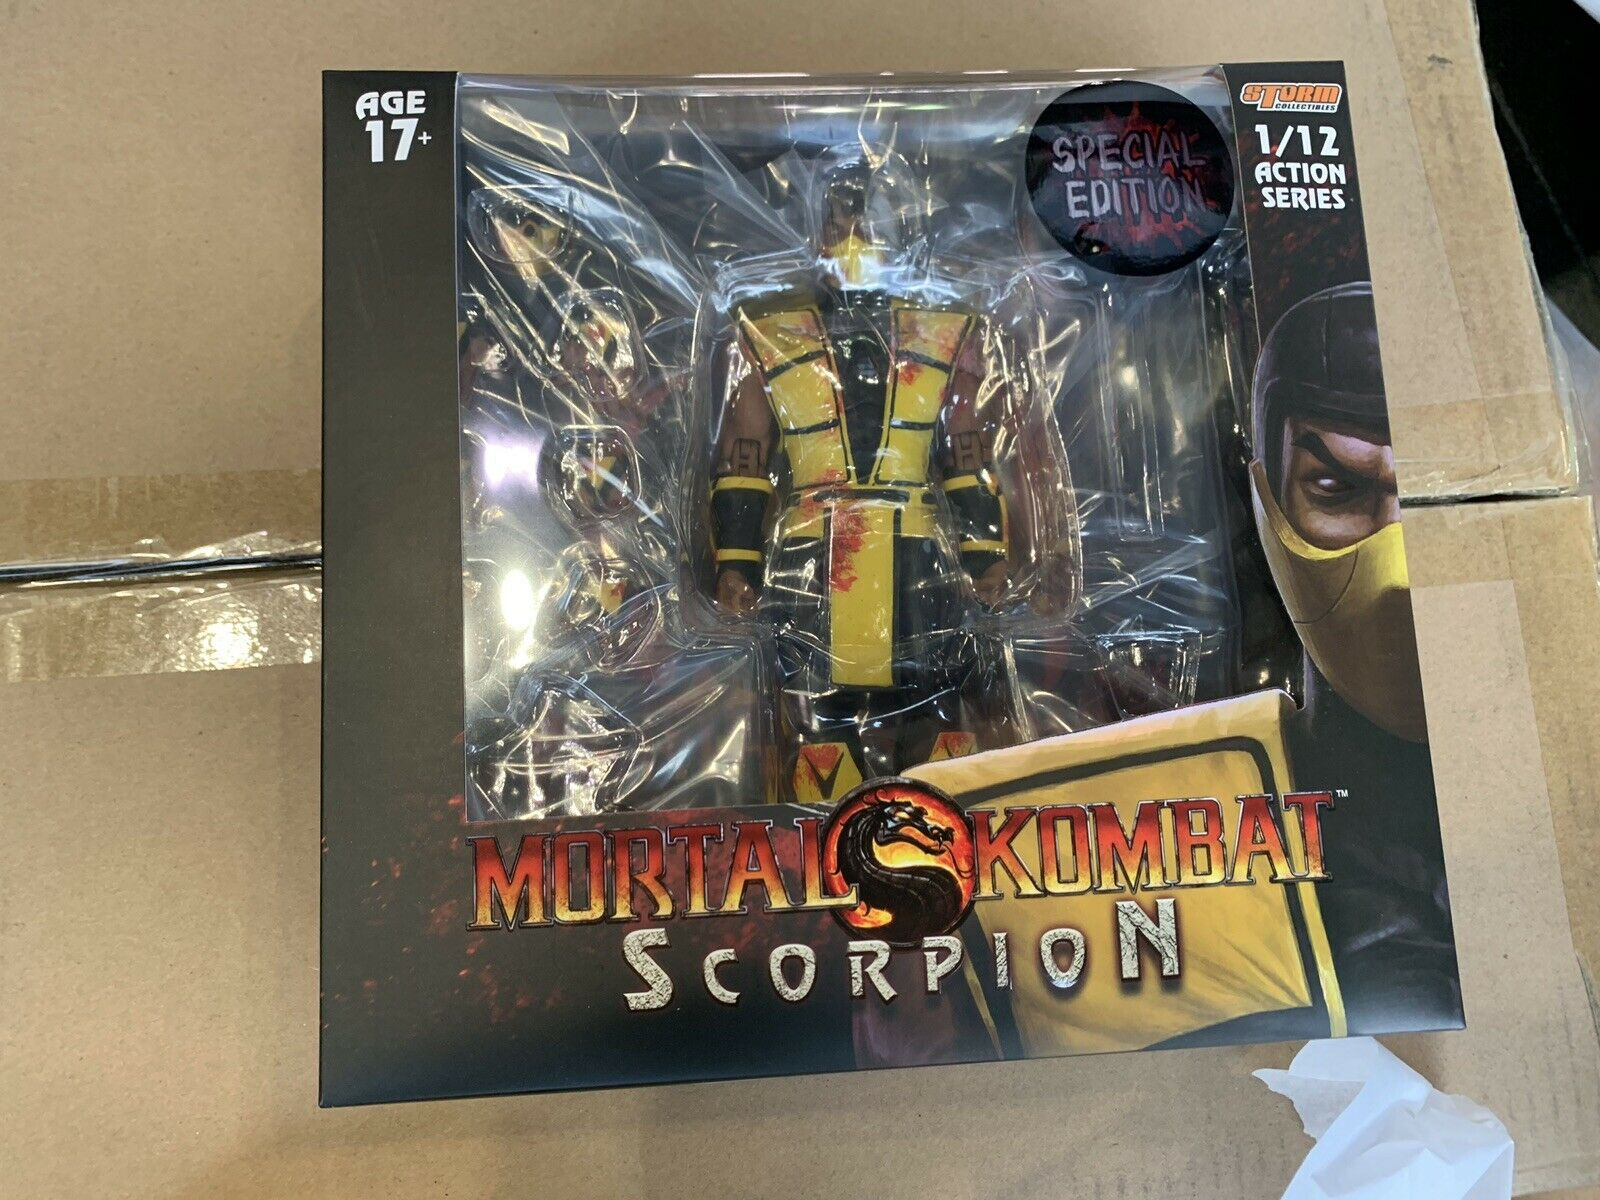 Bloody Scorpion Mortal Kombat Collectibles 2019 NYCC